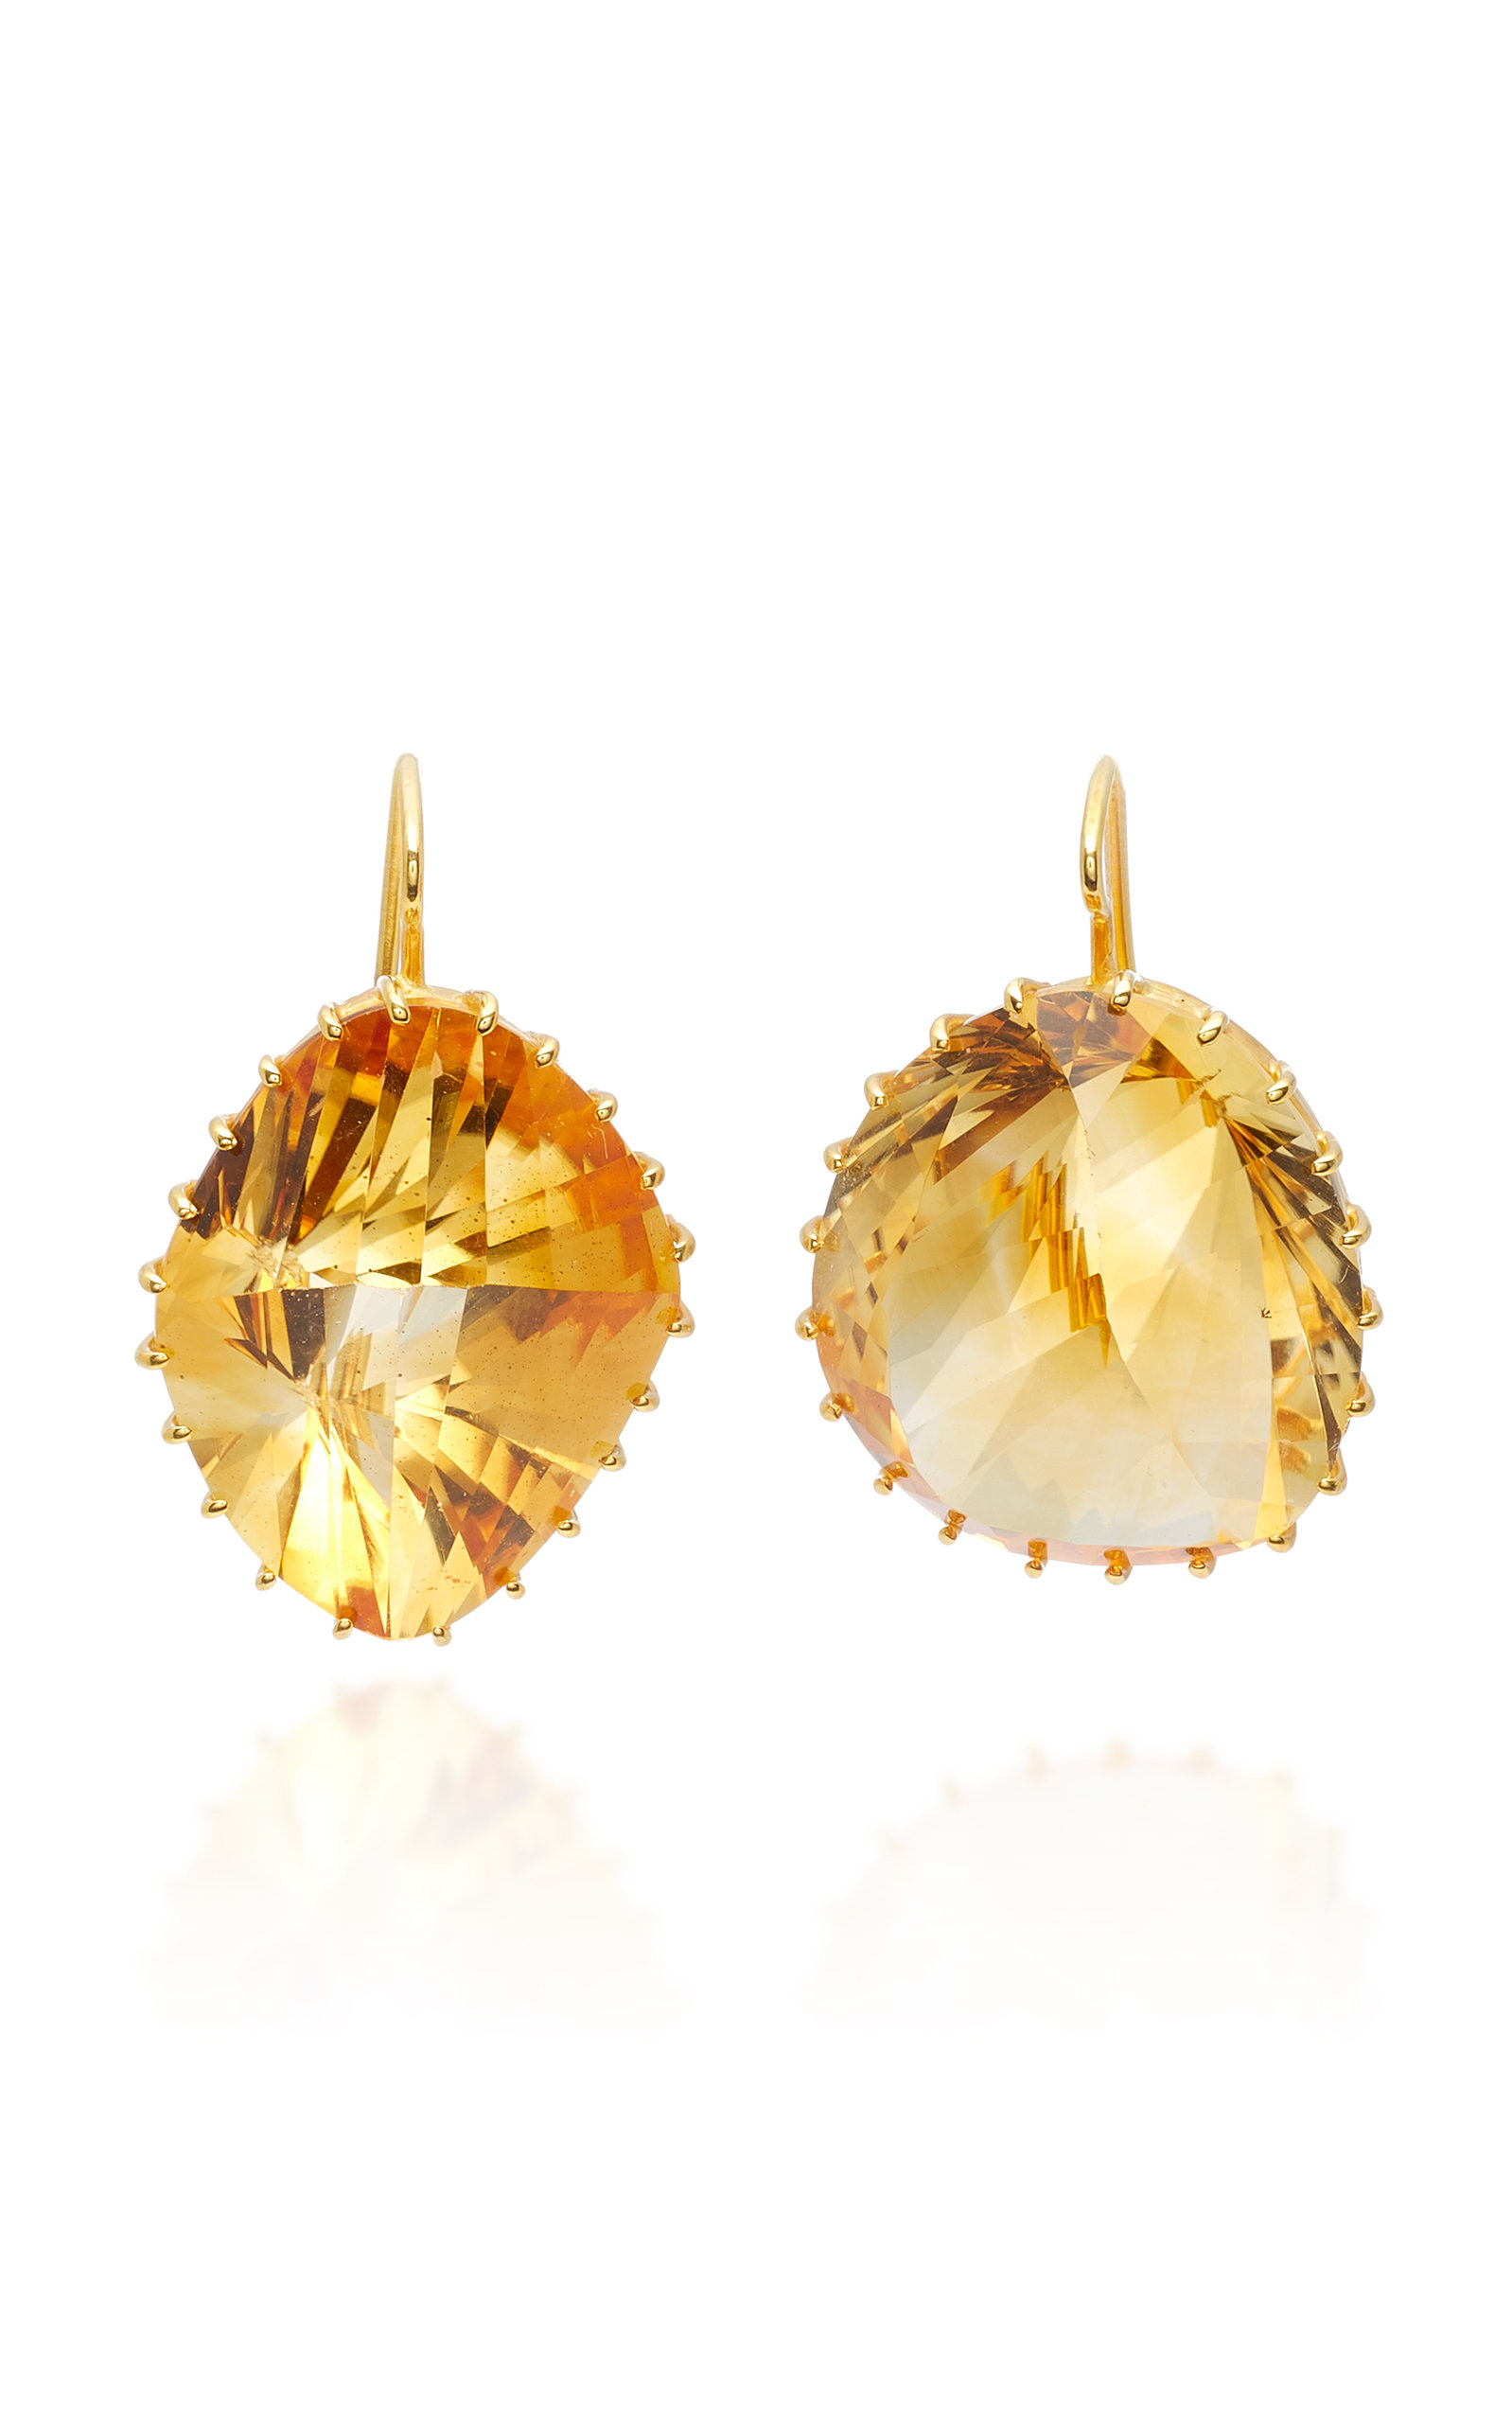 son earrings product citrine watson sparkler tiffany sparklers